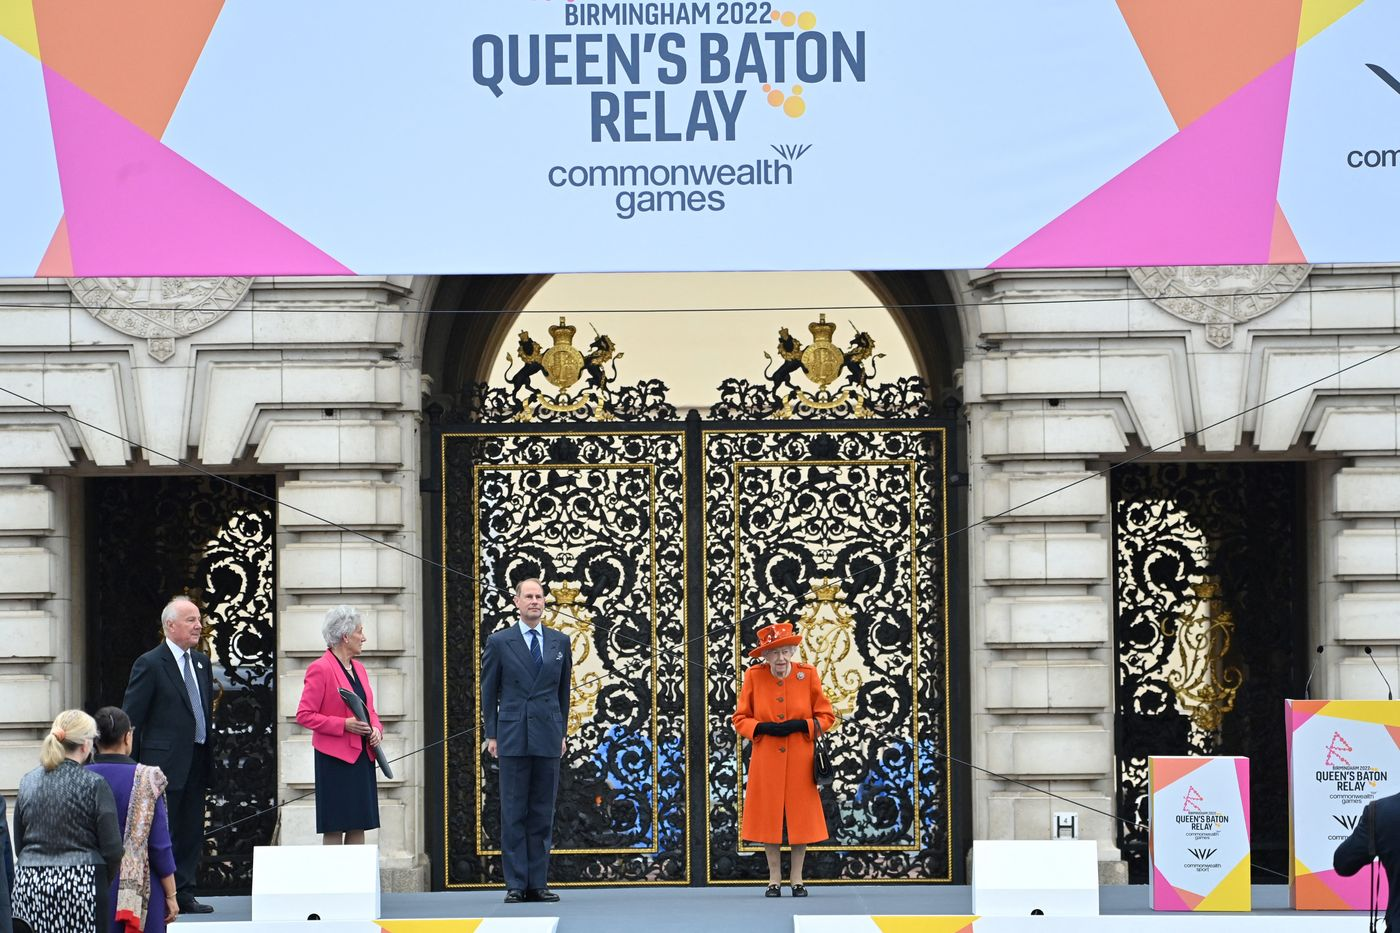 Longines Commonwealth Games Event: Her Majesty the Queen launches the 16th official Queen's Baton Relay for the Birmingham 2022 Commonwealth Games 4